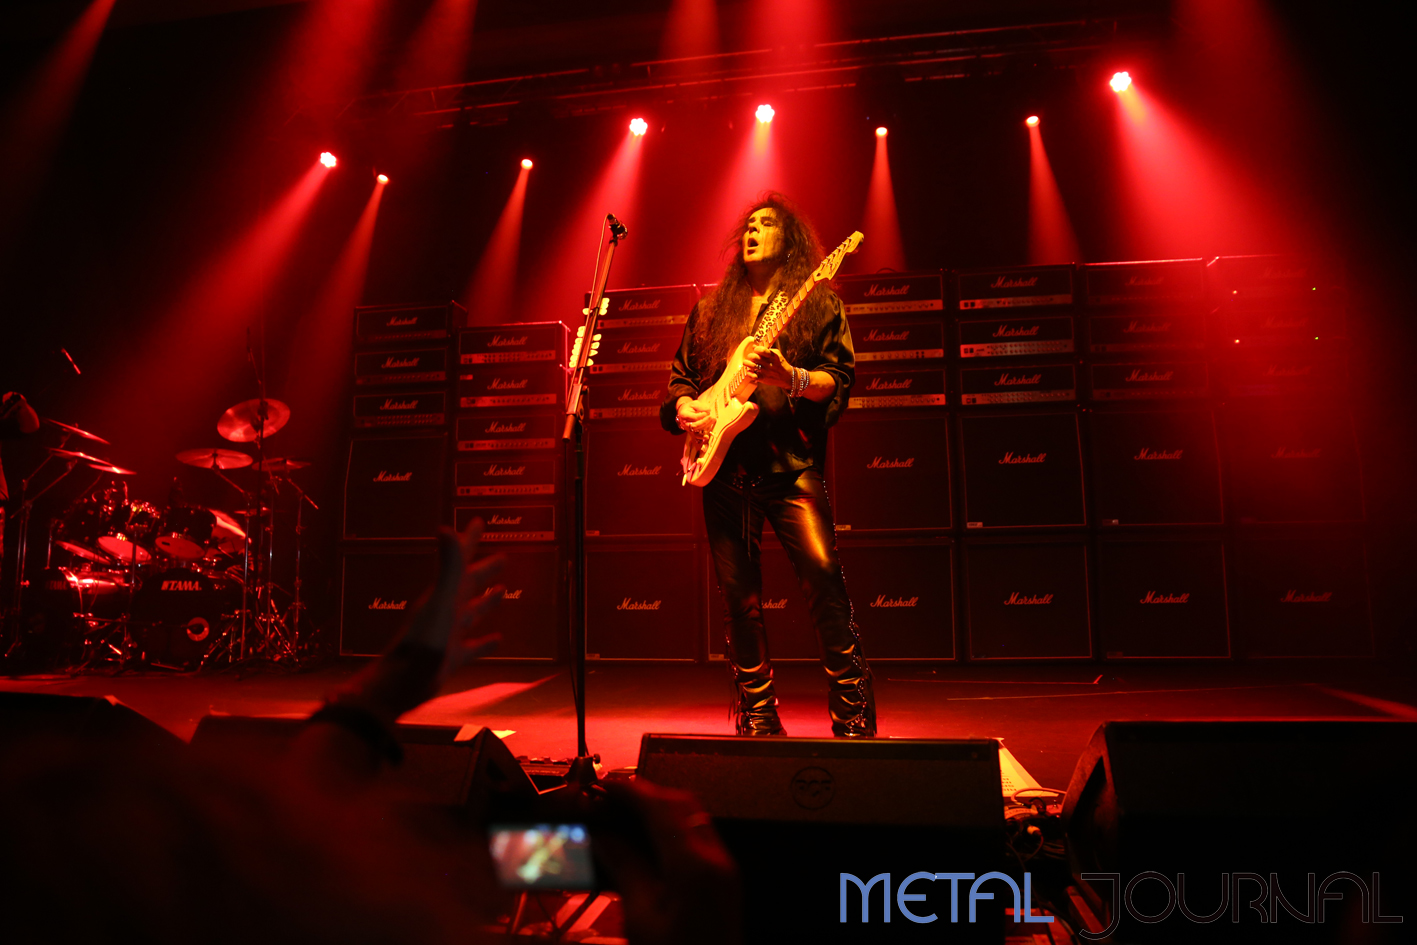 yngwie malmsteen - santander 2018 metal journal pic 8